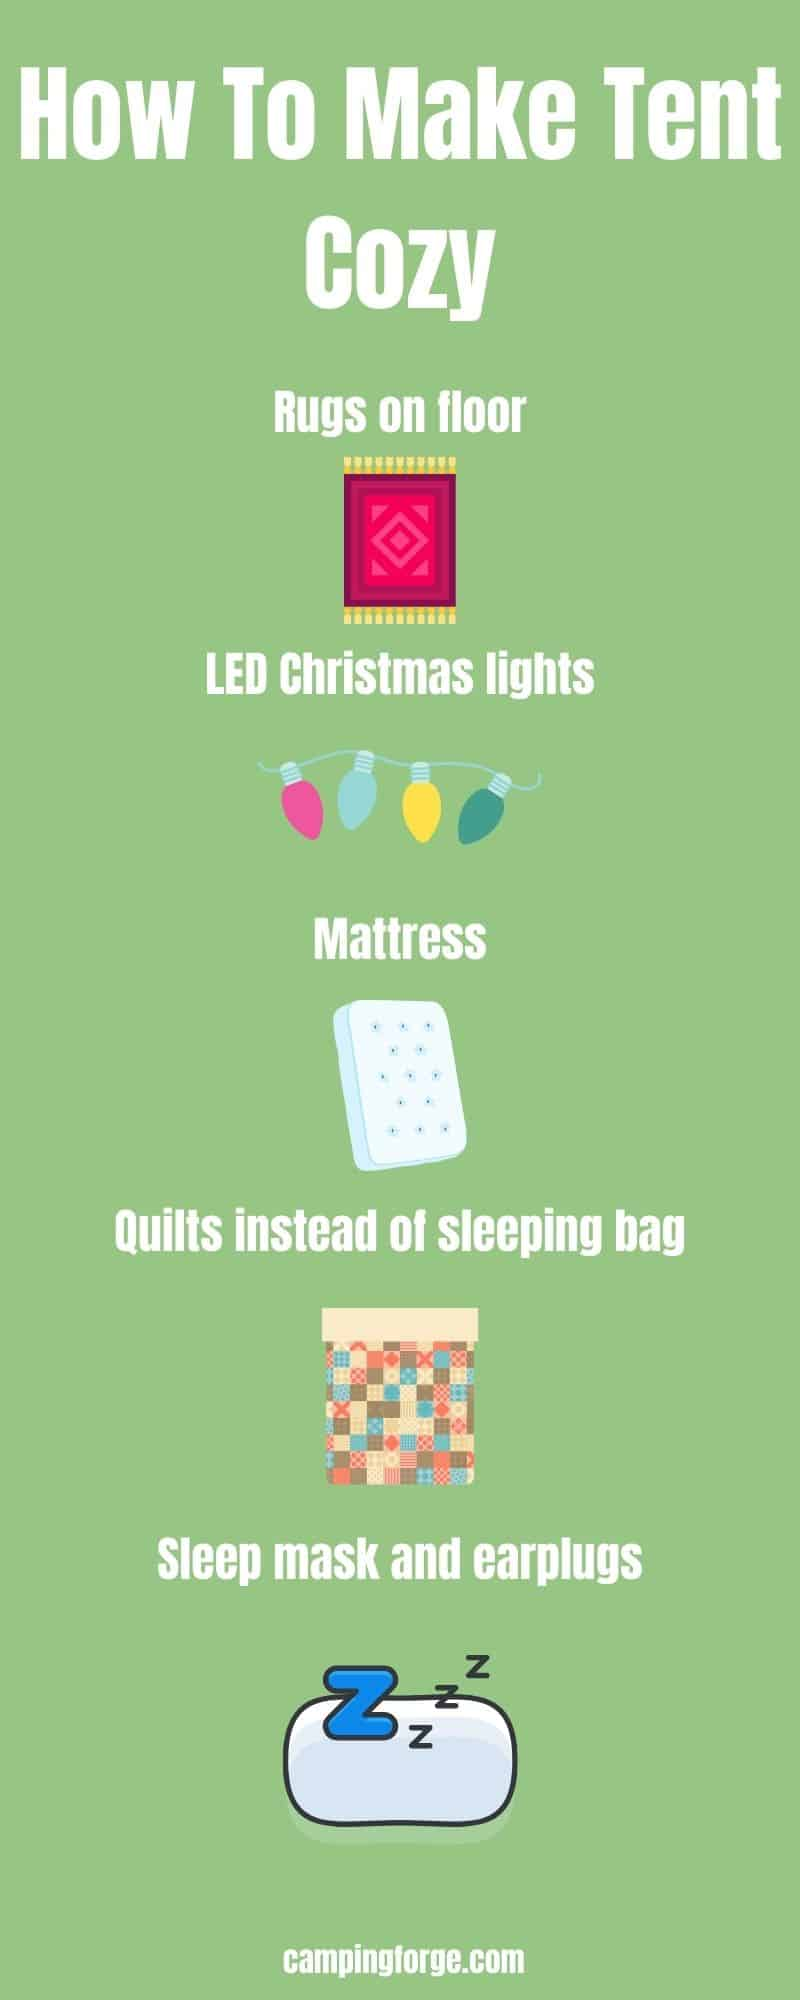 An infographic on how to make your tent cozy